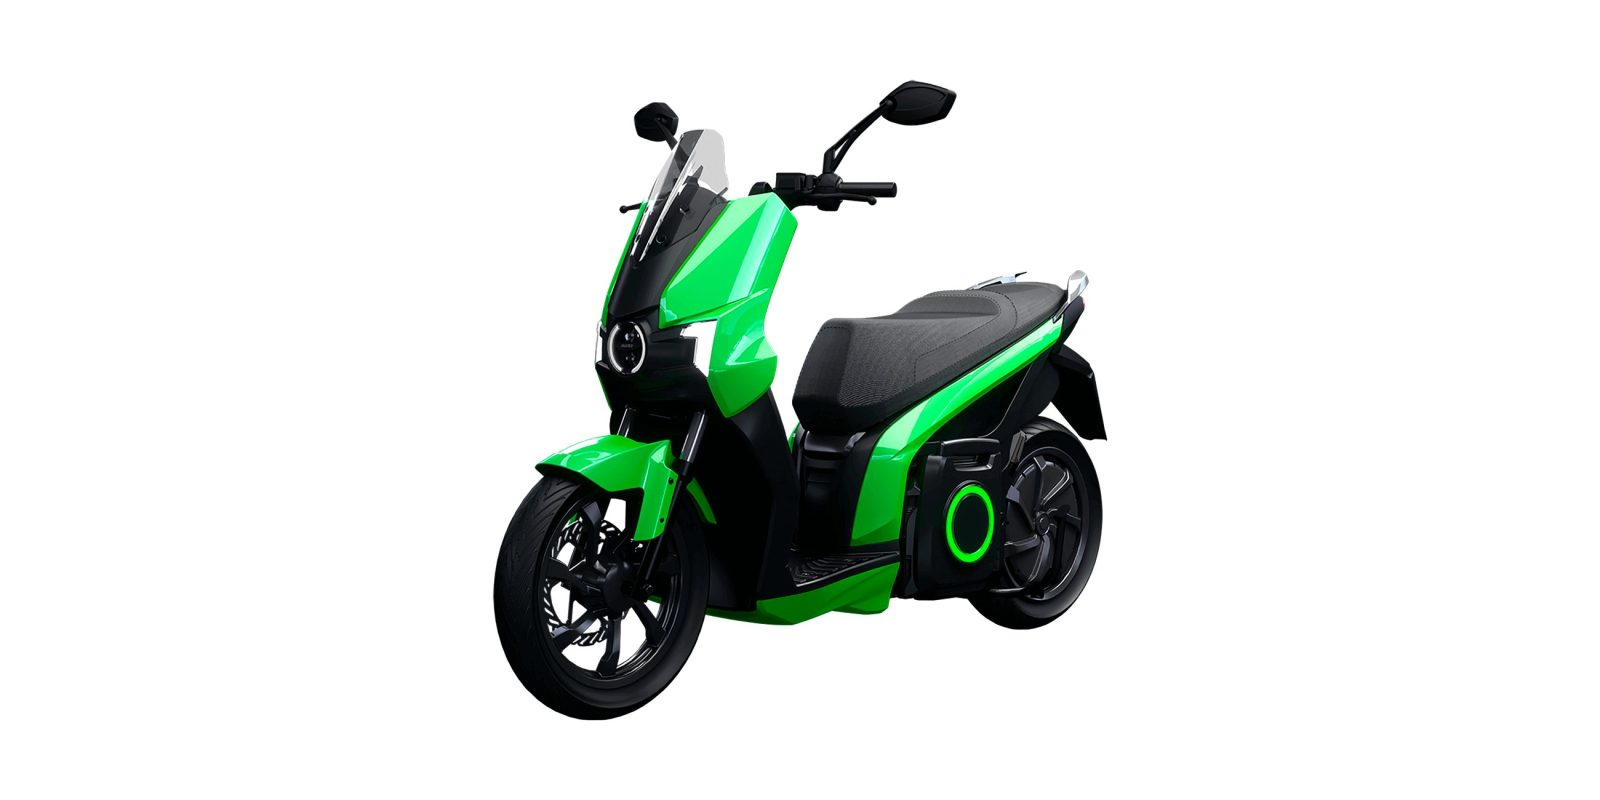 Silence S01 62 mph electric scooter with 5 kWh removable